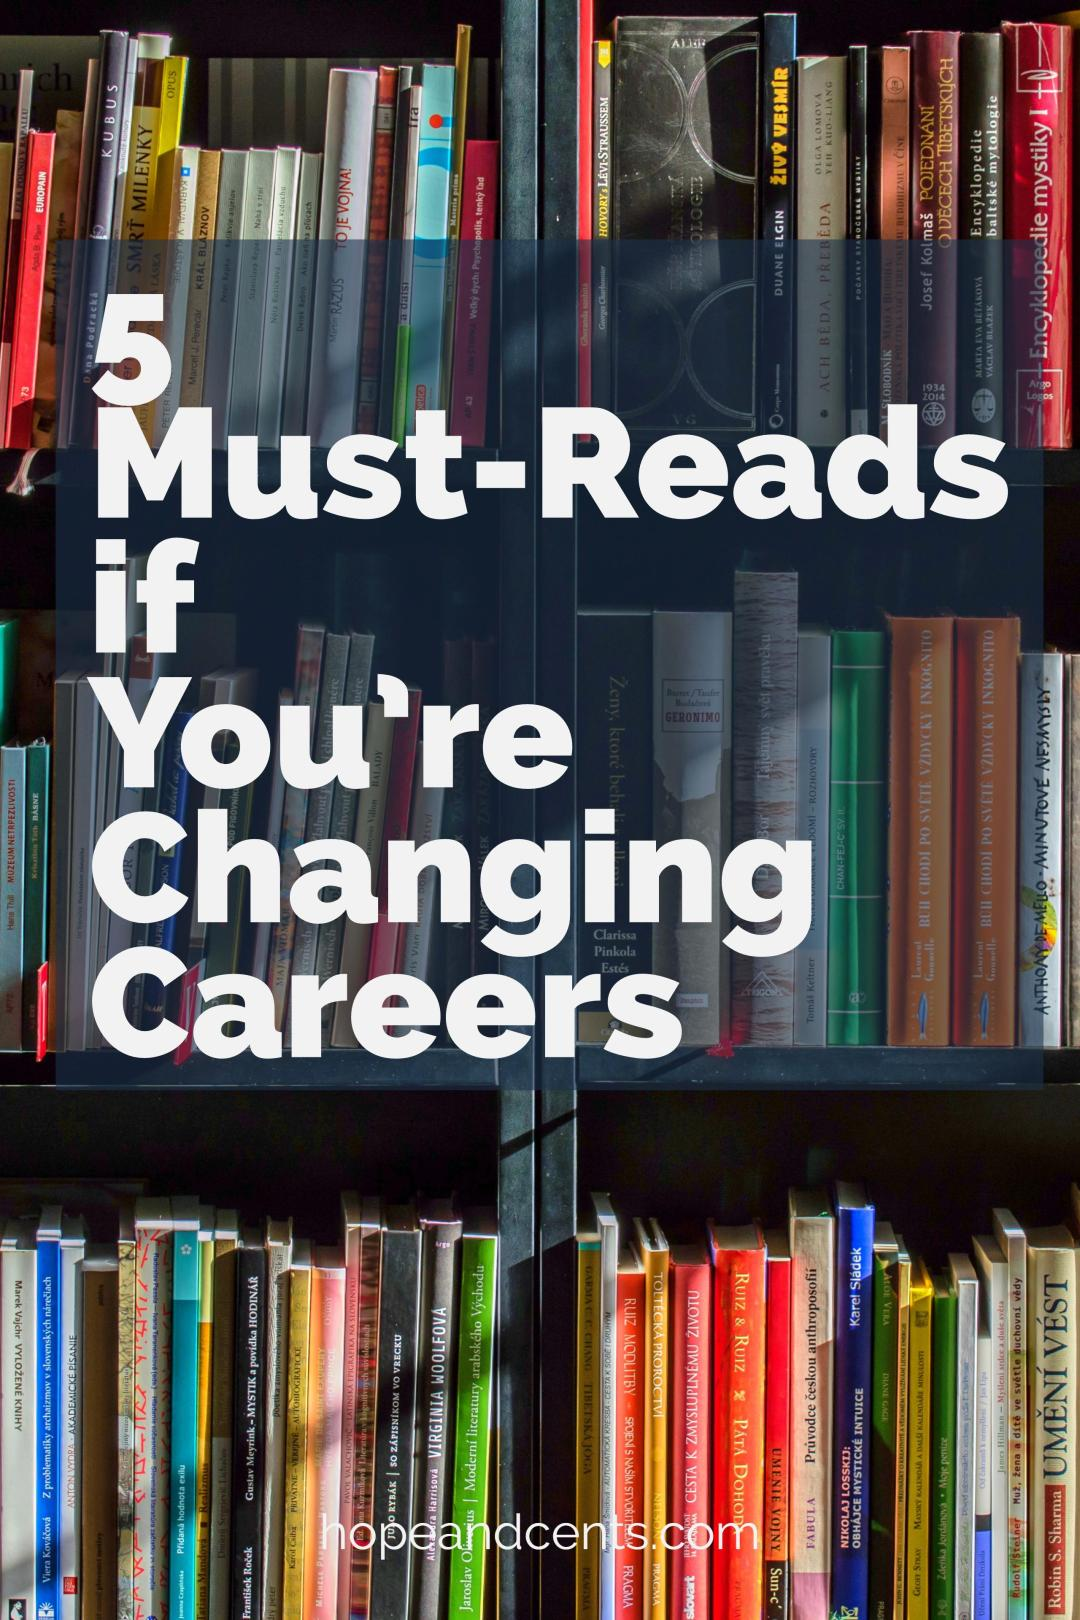 Considering a career change? Developing your side hustle? Then you're going to need to do some reading. These five books are must-reads if you're changing careers or starting your own business. #sidehustle #career #careeradvice #entrepreneurs